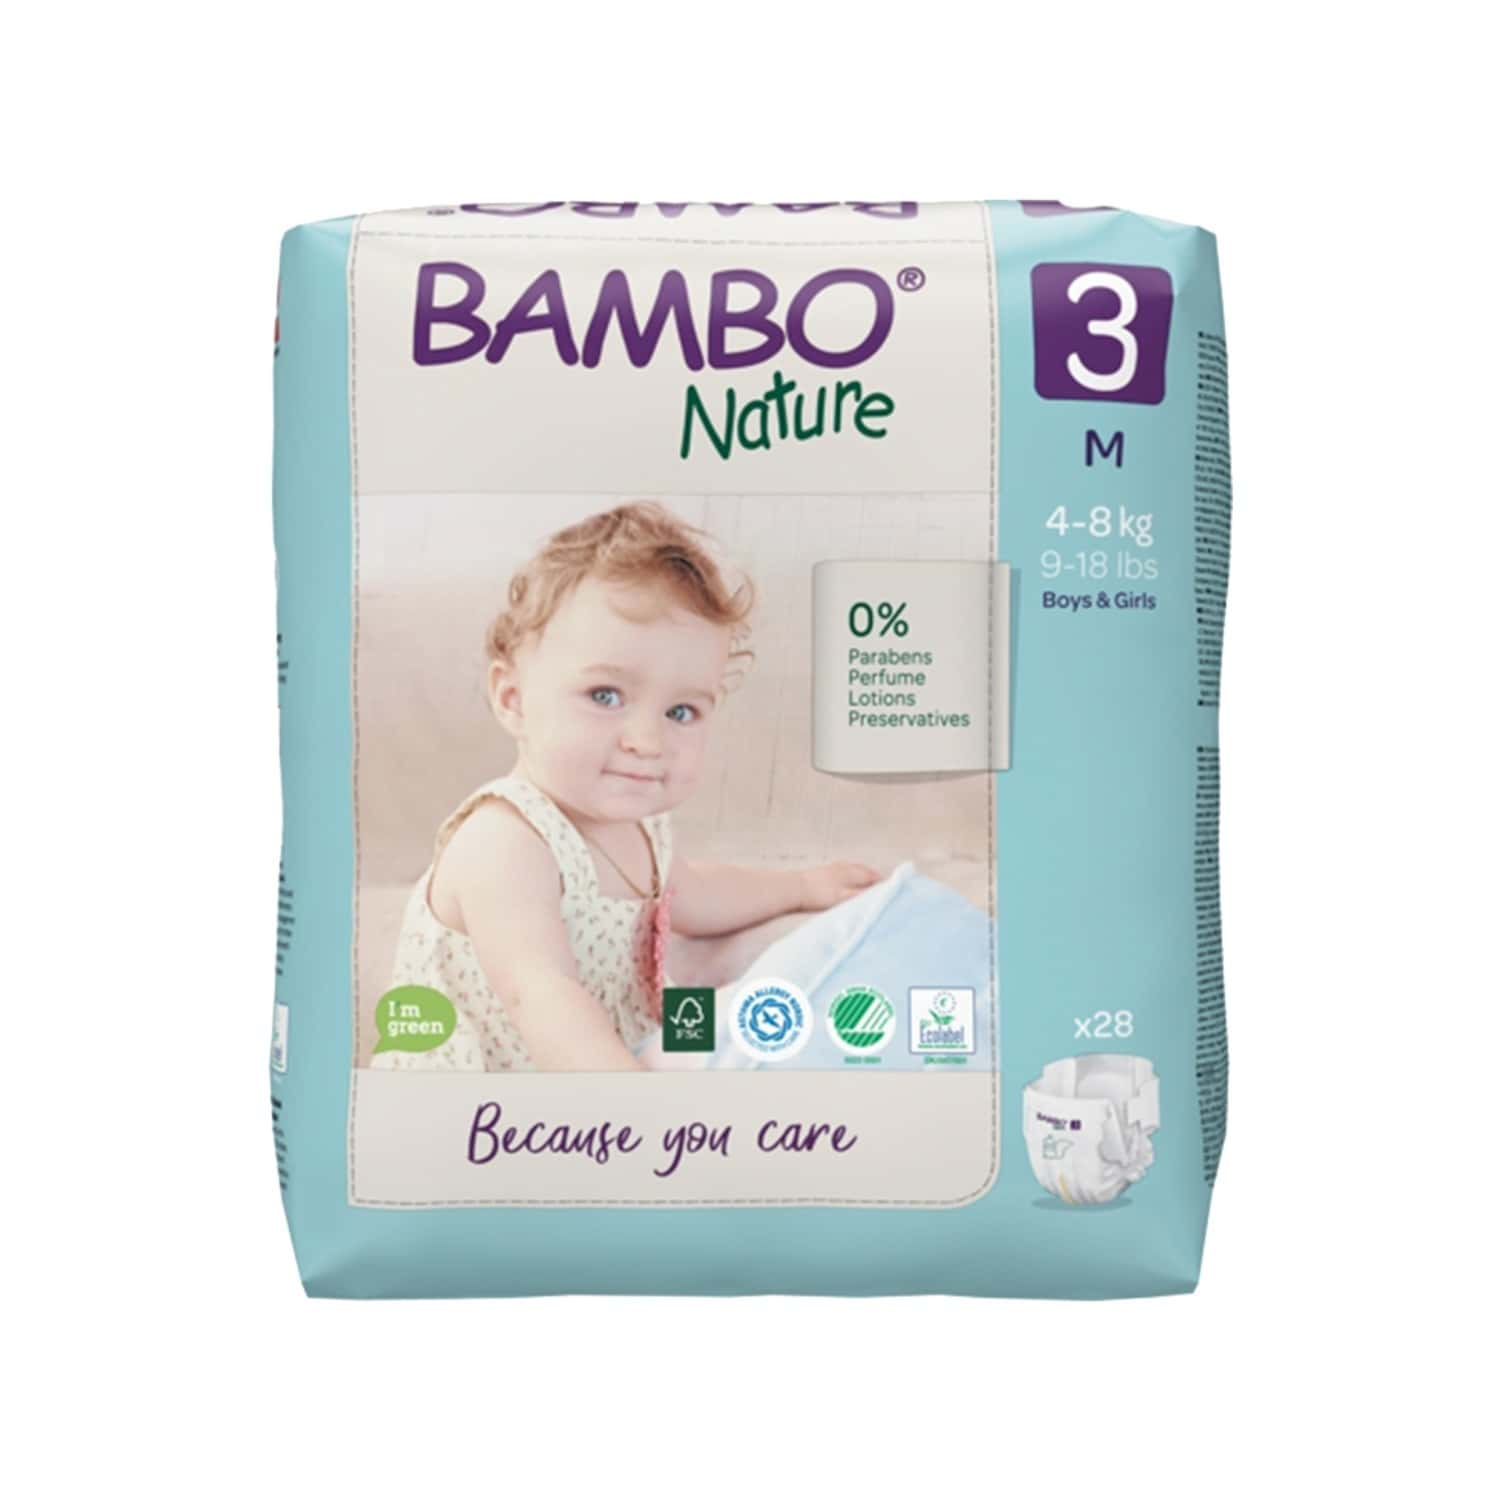 Bambo Nature Medium Size Diaper With Wetness Indicator - 28 Diapers